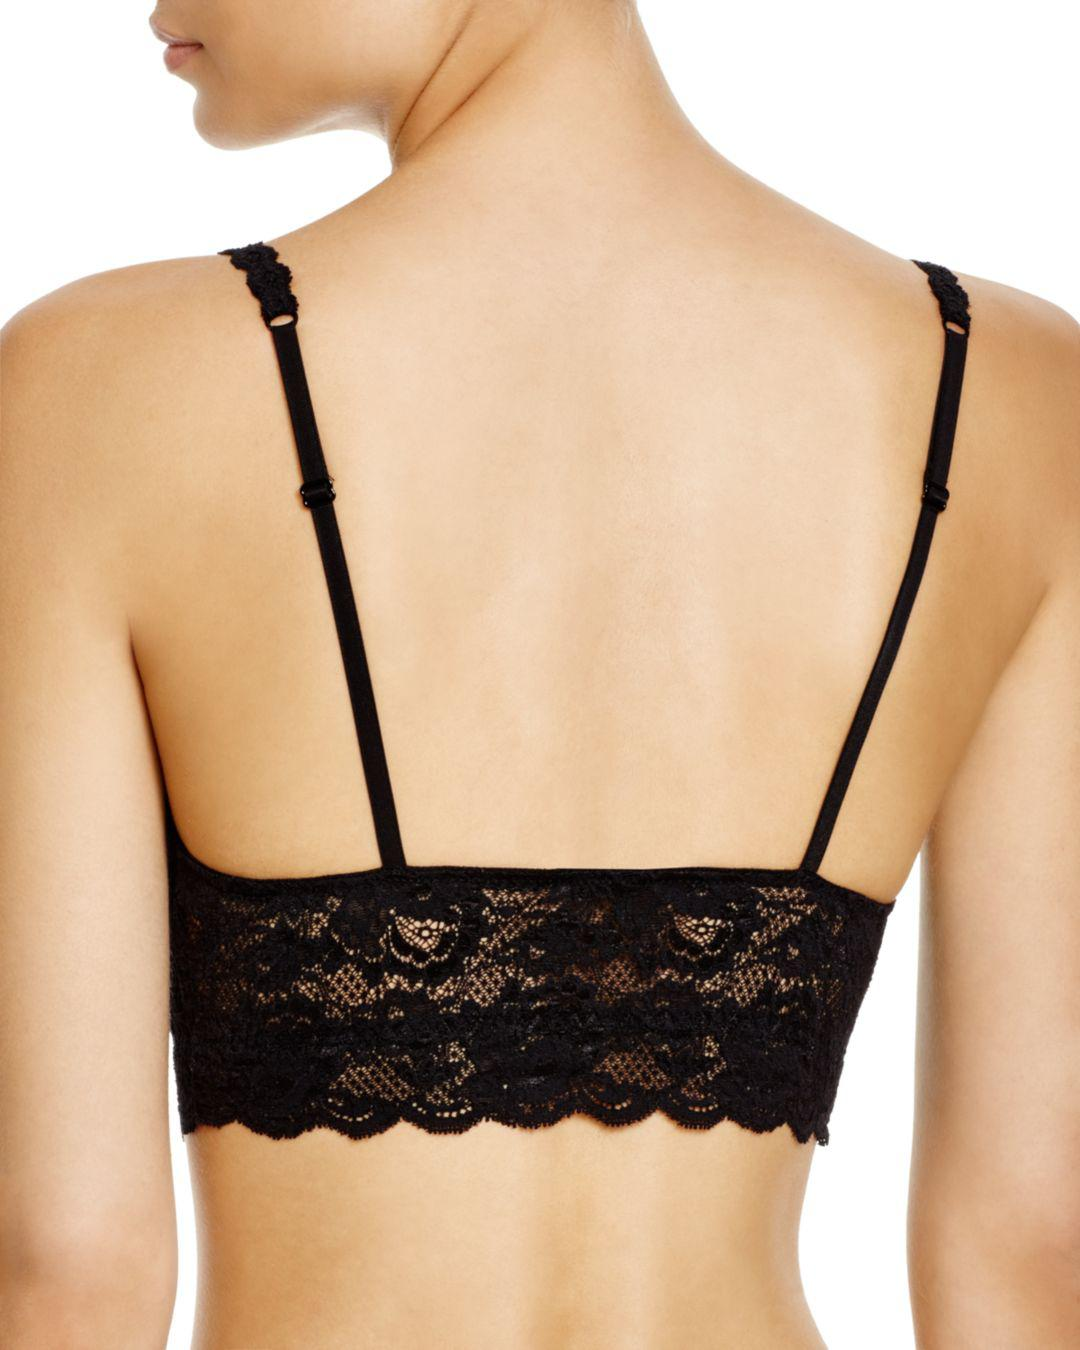 f7e35baa4d43c Lyst - Cosabella Never Say Never Sweetie Soft Bra in Black - Save  5.454545454545453%